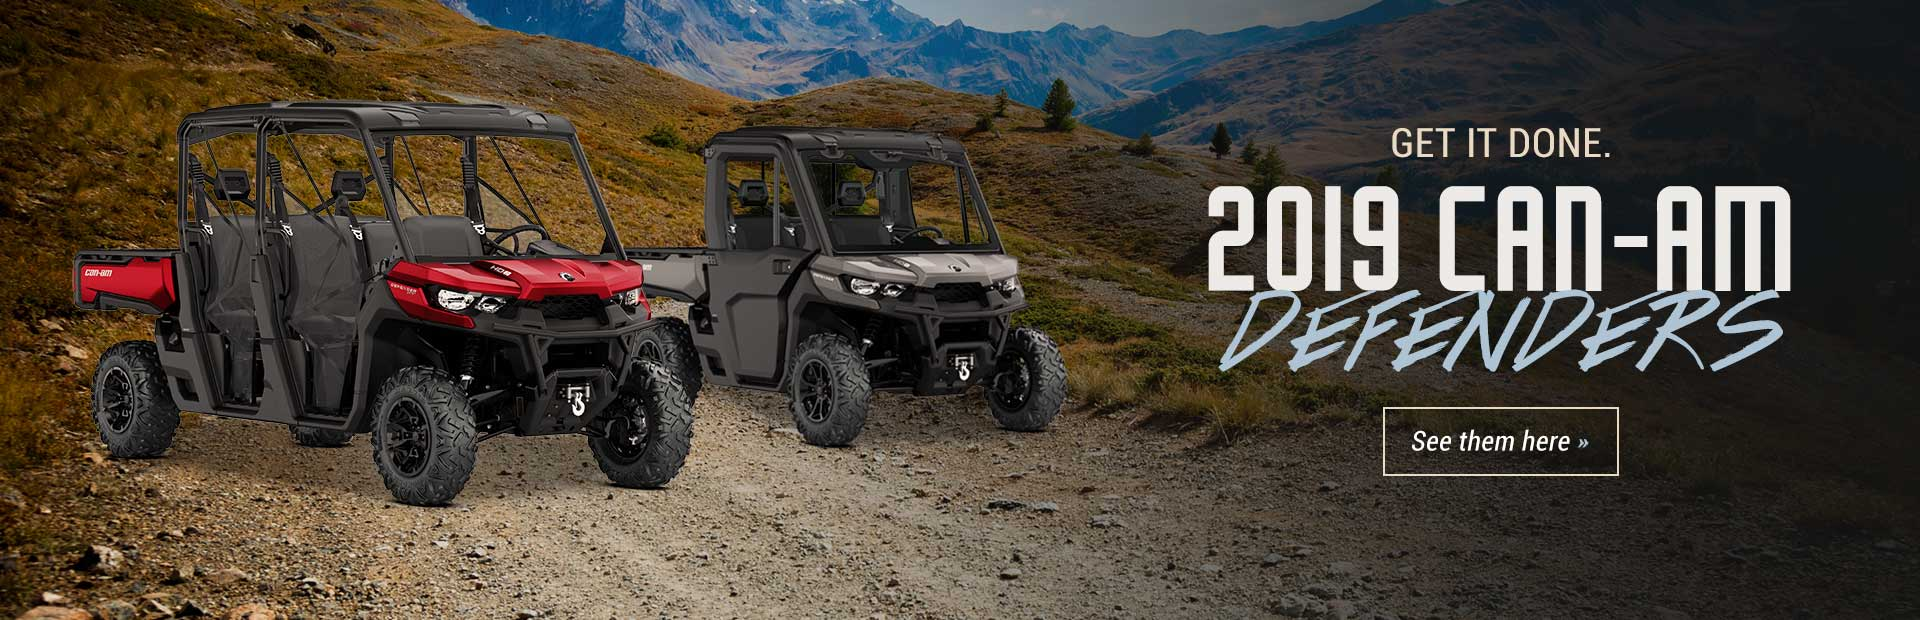 2019 Can-Am Defenders: Click here to view the models.